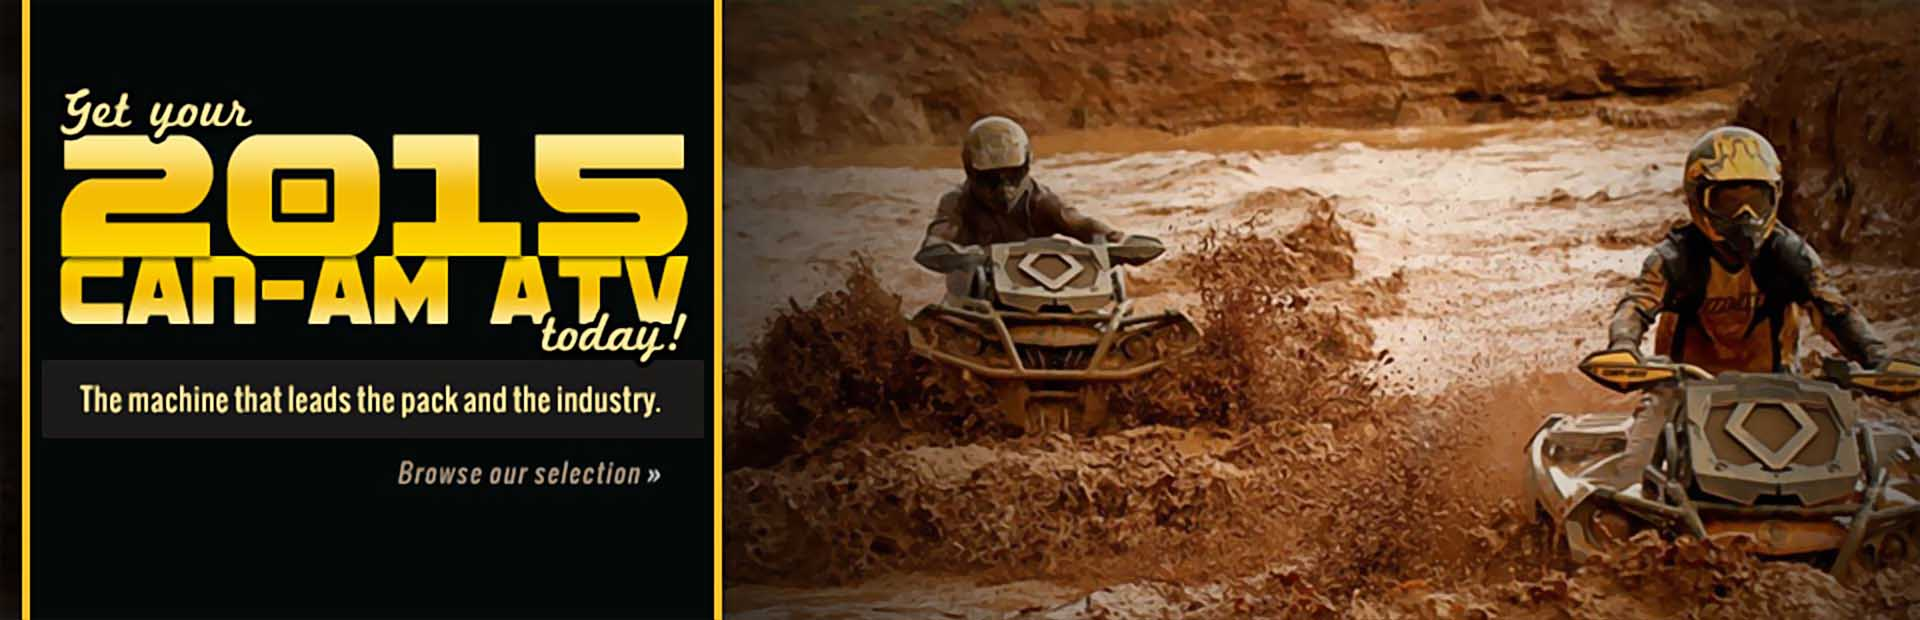 2015 Can-Am ATVs: Click here to view the models.